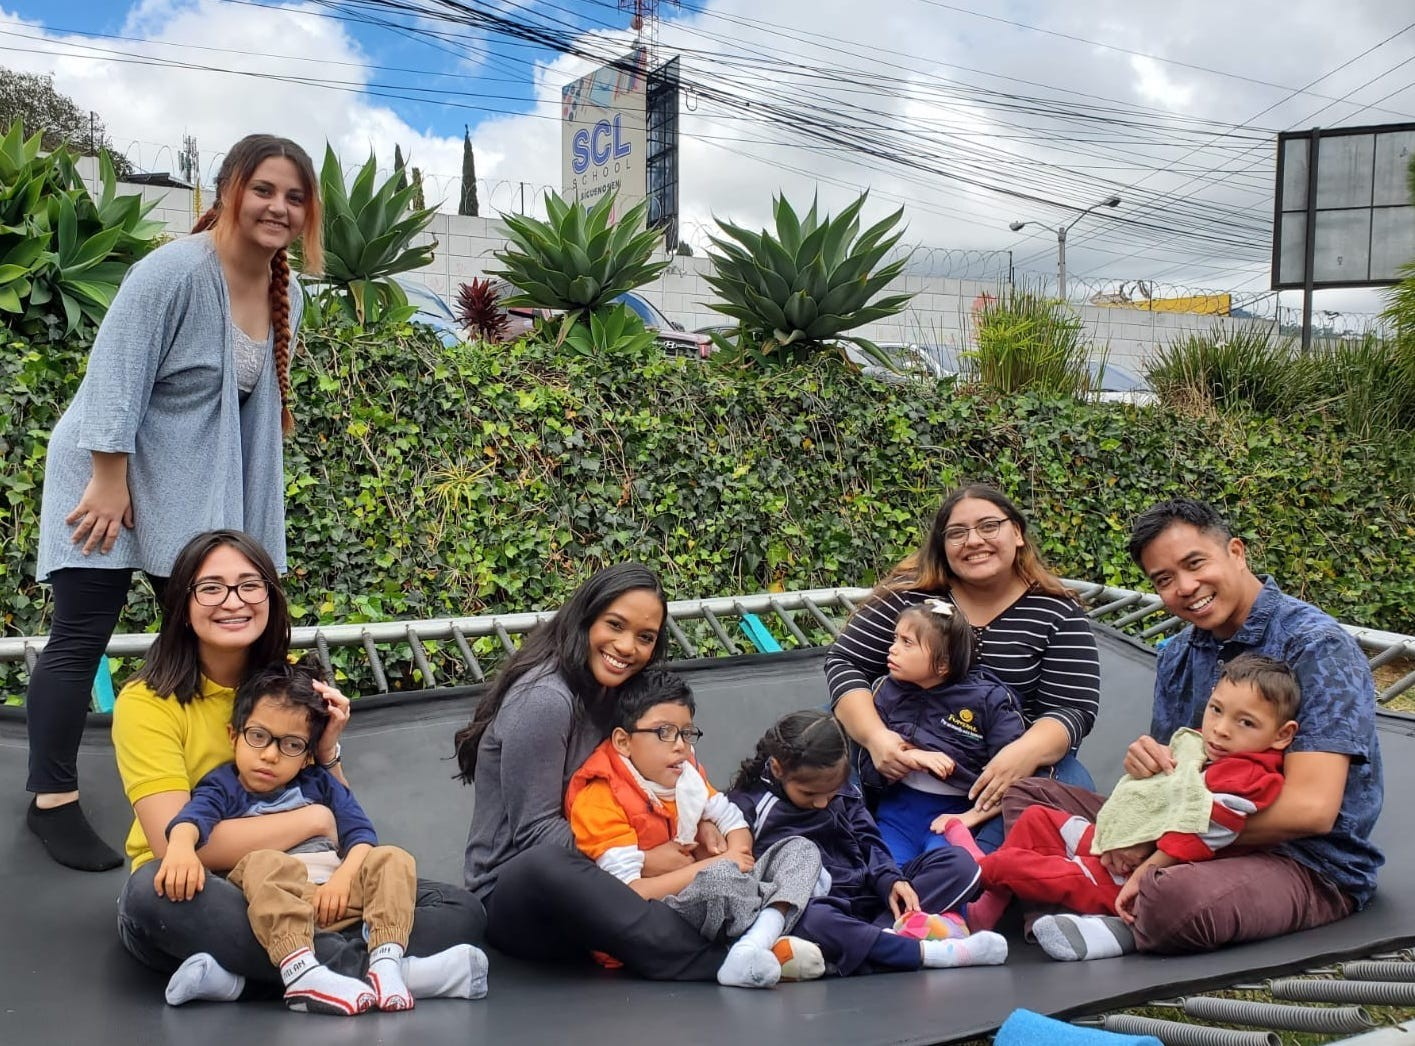 Kristen Nahrstedt, the director of clinical education in the speech-language pathology department since 2013, took a group of SLP students to Guatemala over winter break. It was the first time CSUSM SLP students have done clinical work in a foreign country.